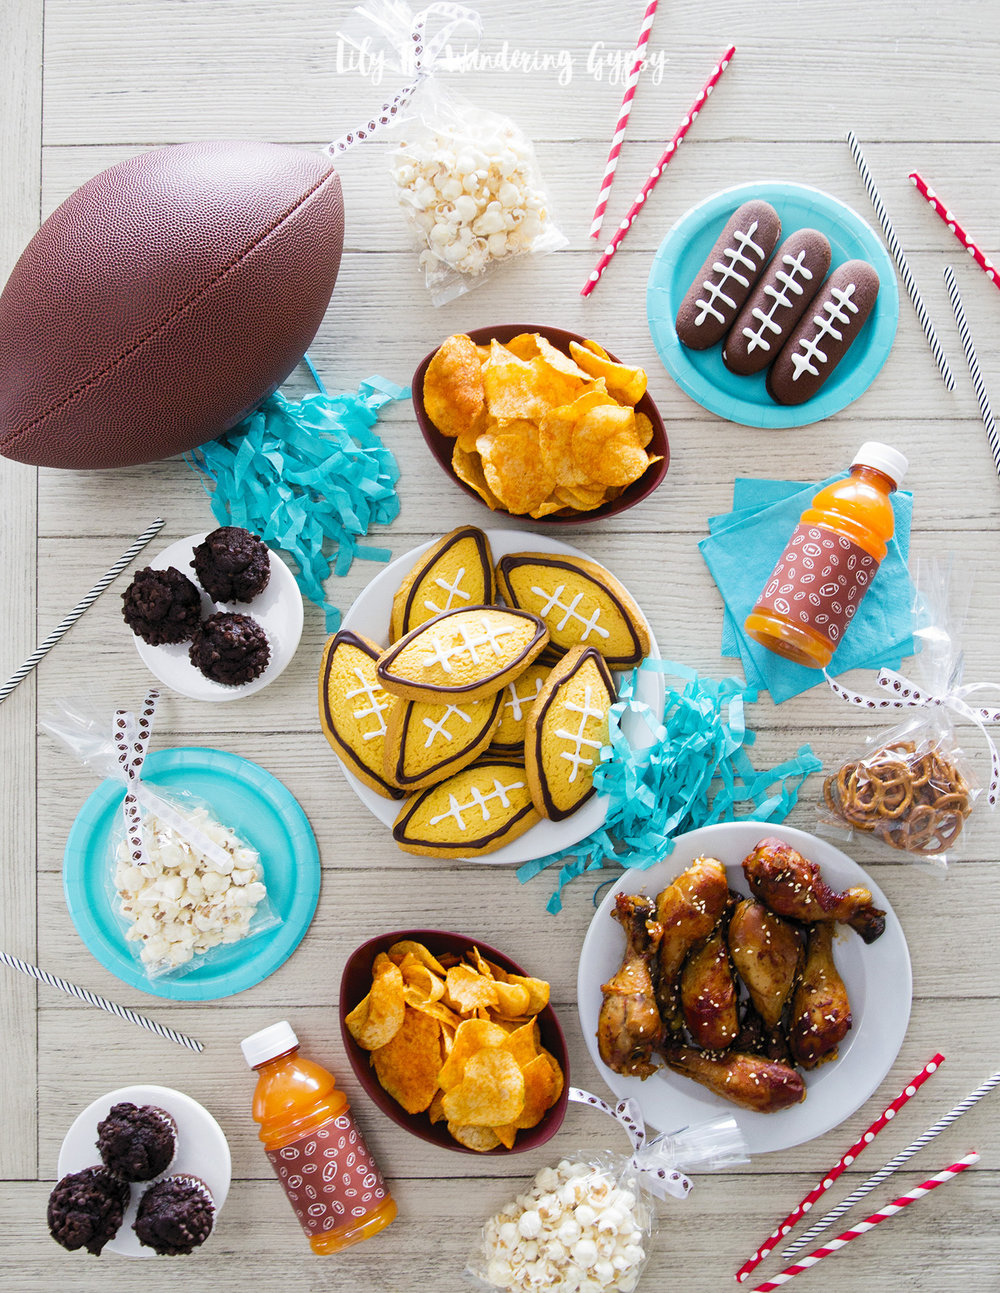 Football Party Decor and Food Ideas